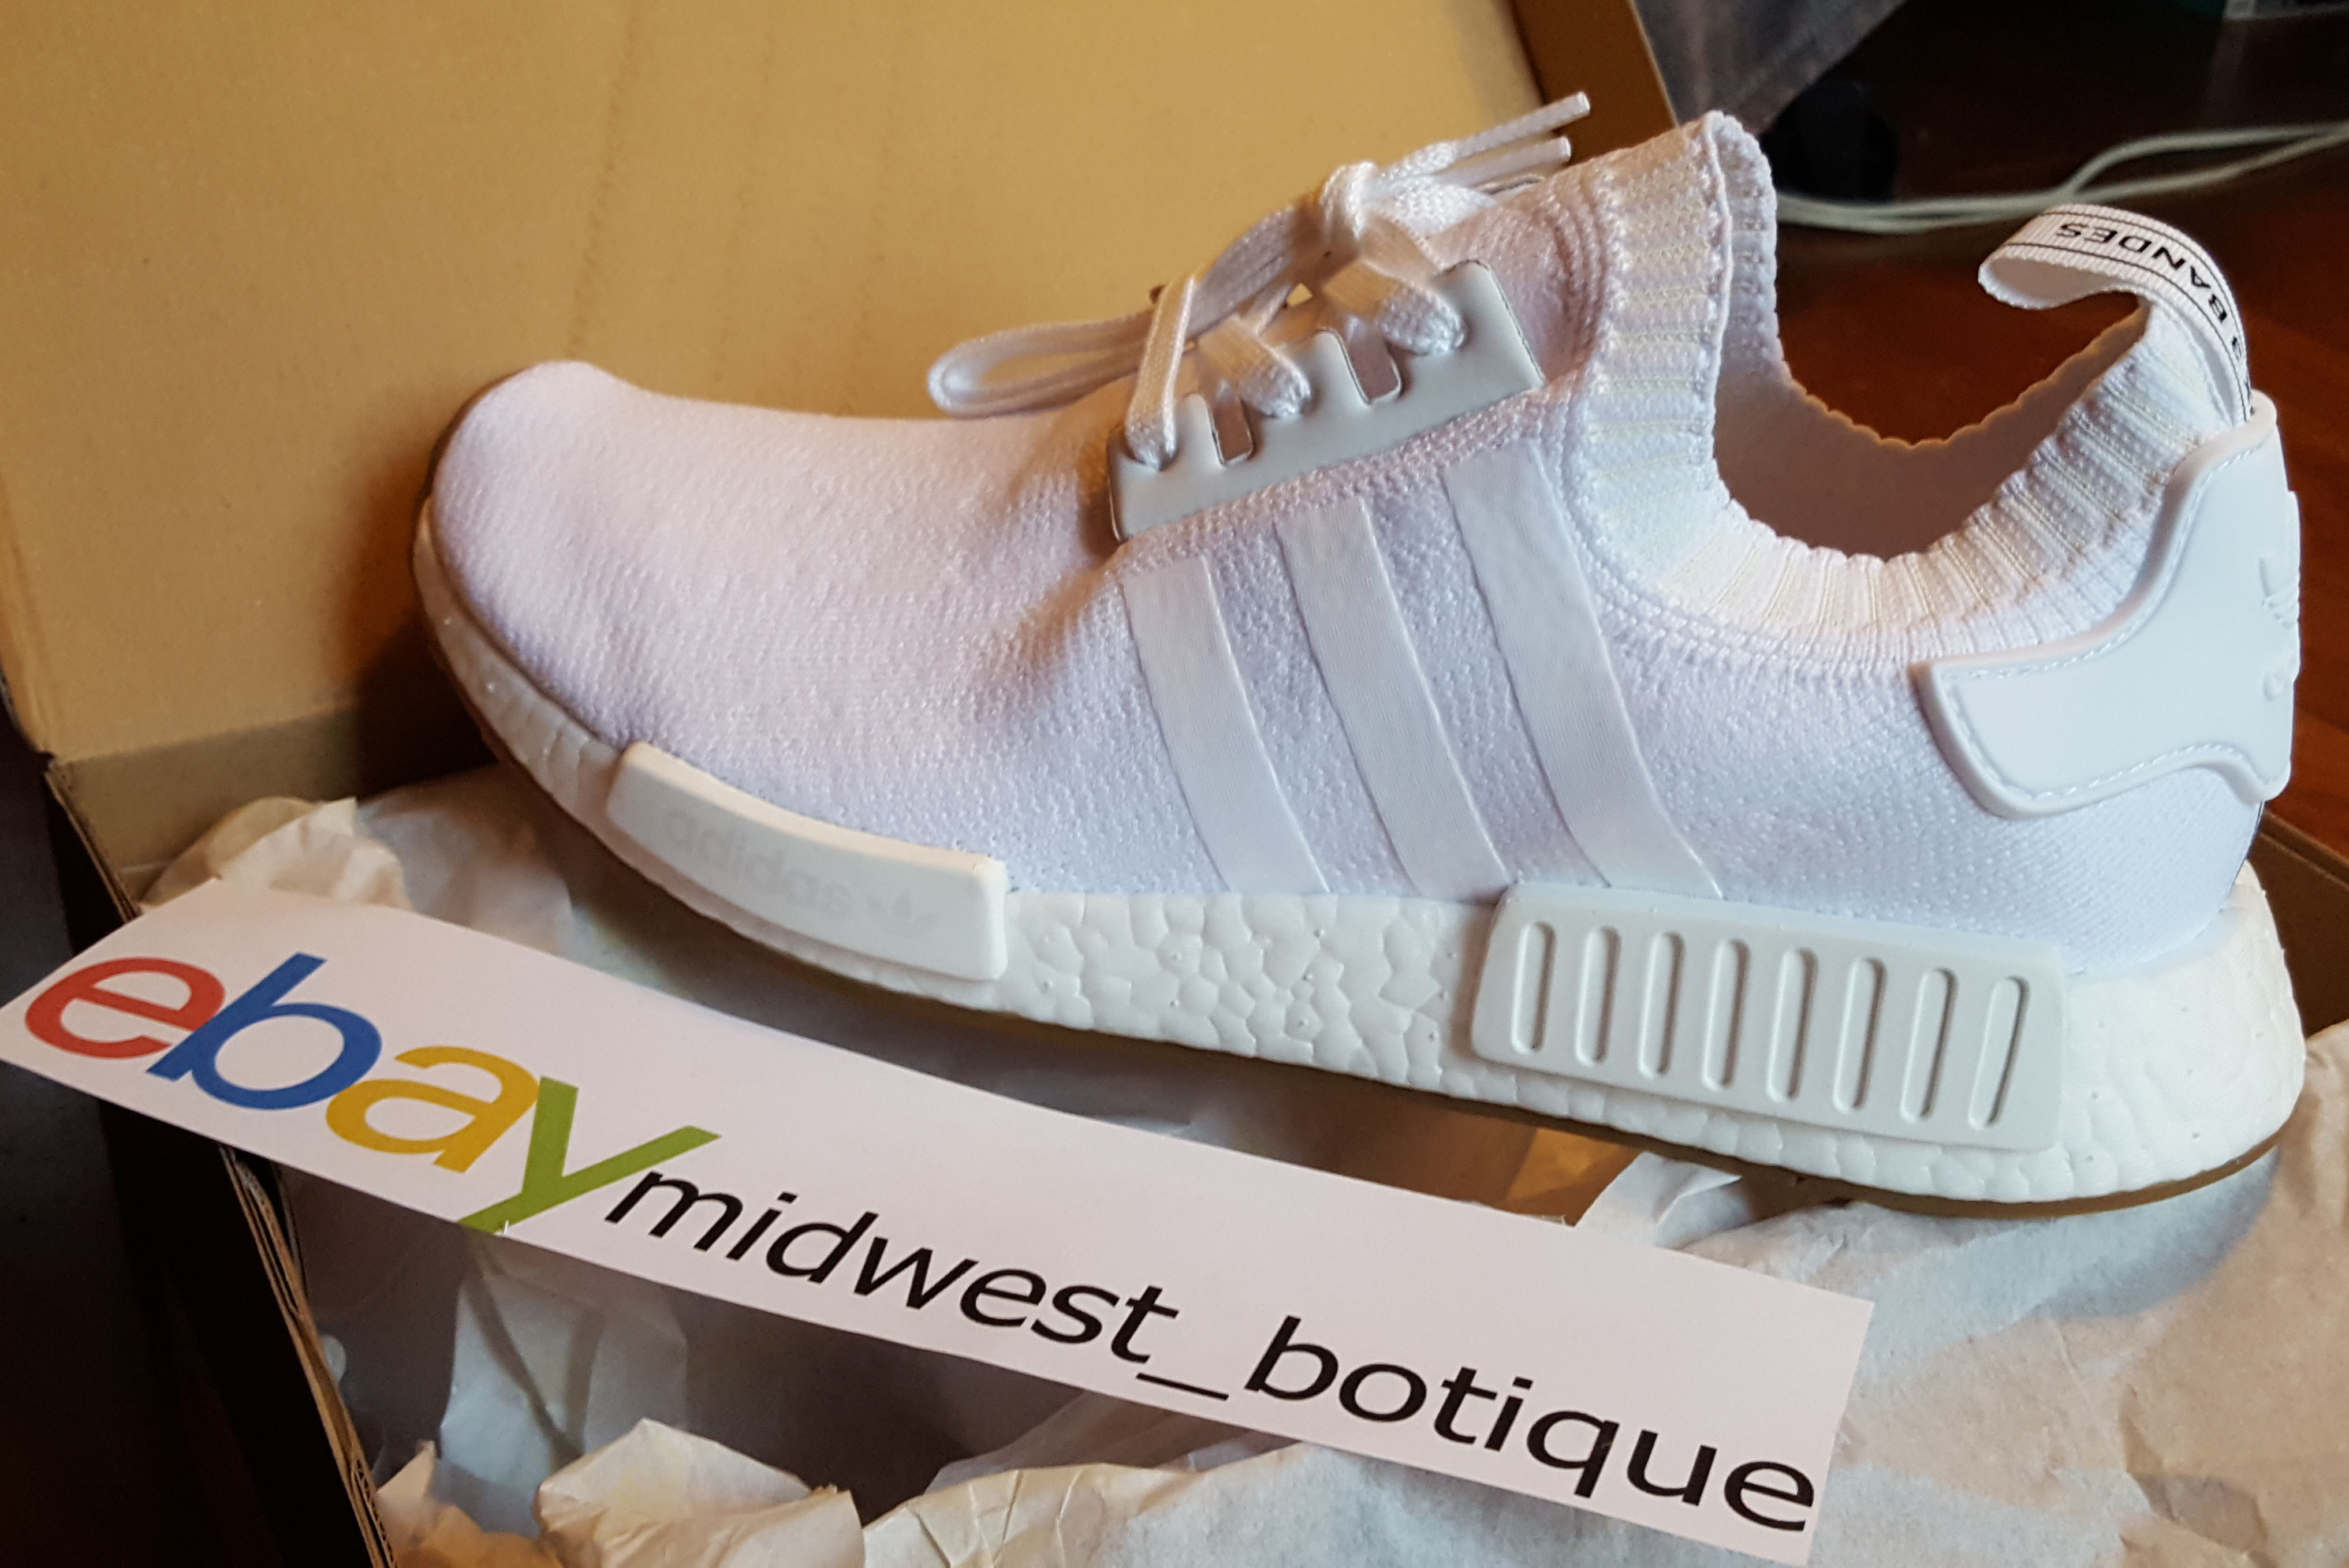 56fdb644b Adidas Gum Pack White NMD R1 Primeknit (BY1888) Size 10.5 - Low-Top  Sneakers for Sale - Grailed